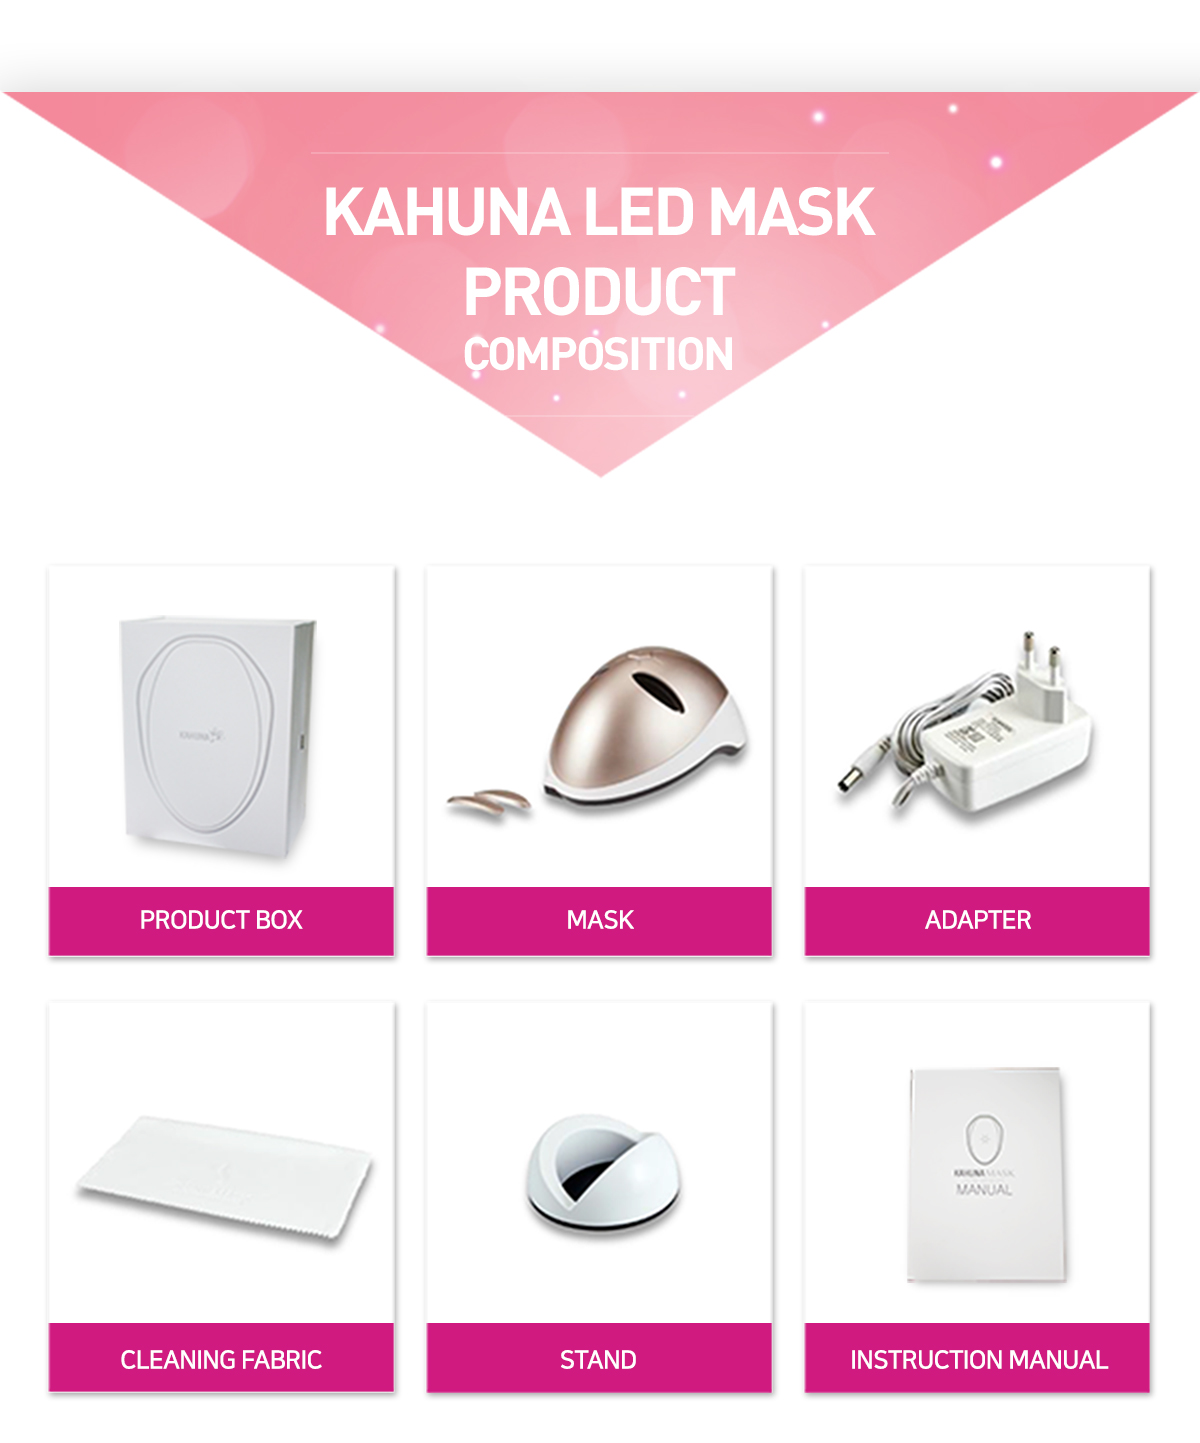 led-mask-description-013019-10.jpg